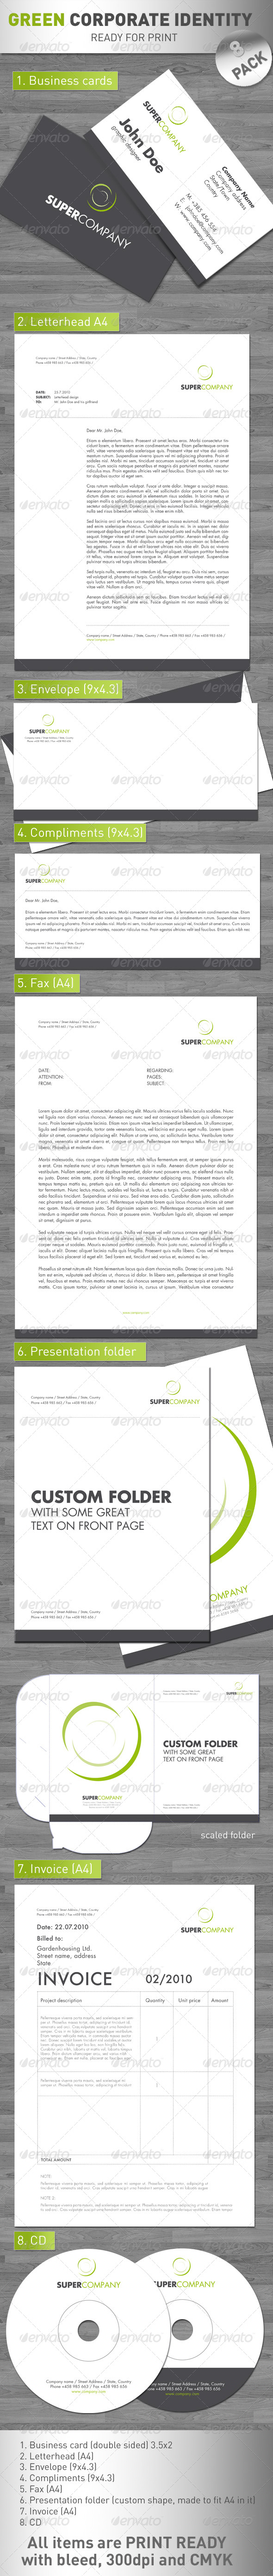 Green Corporate Identity - 8 PACK ! - Stationery Print Templates